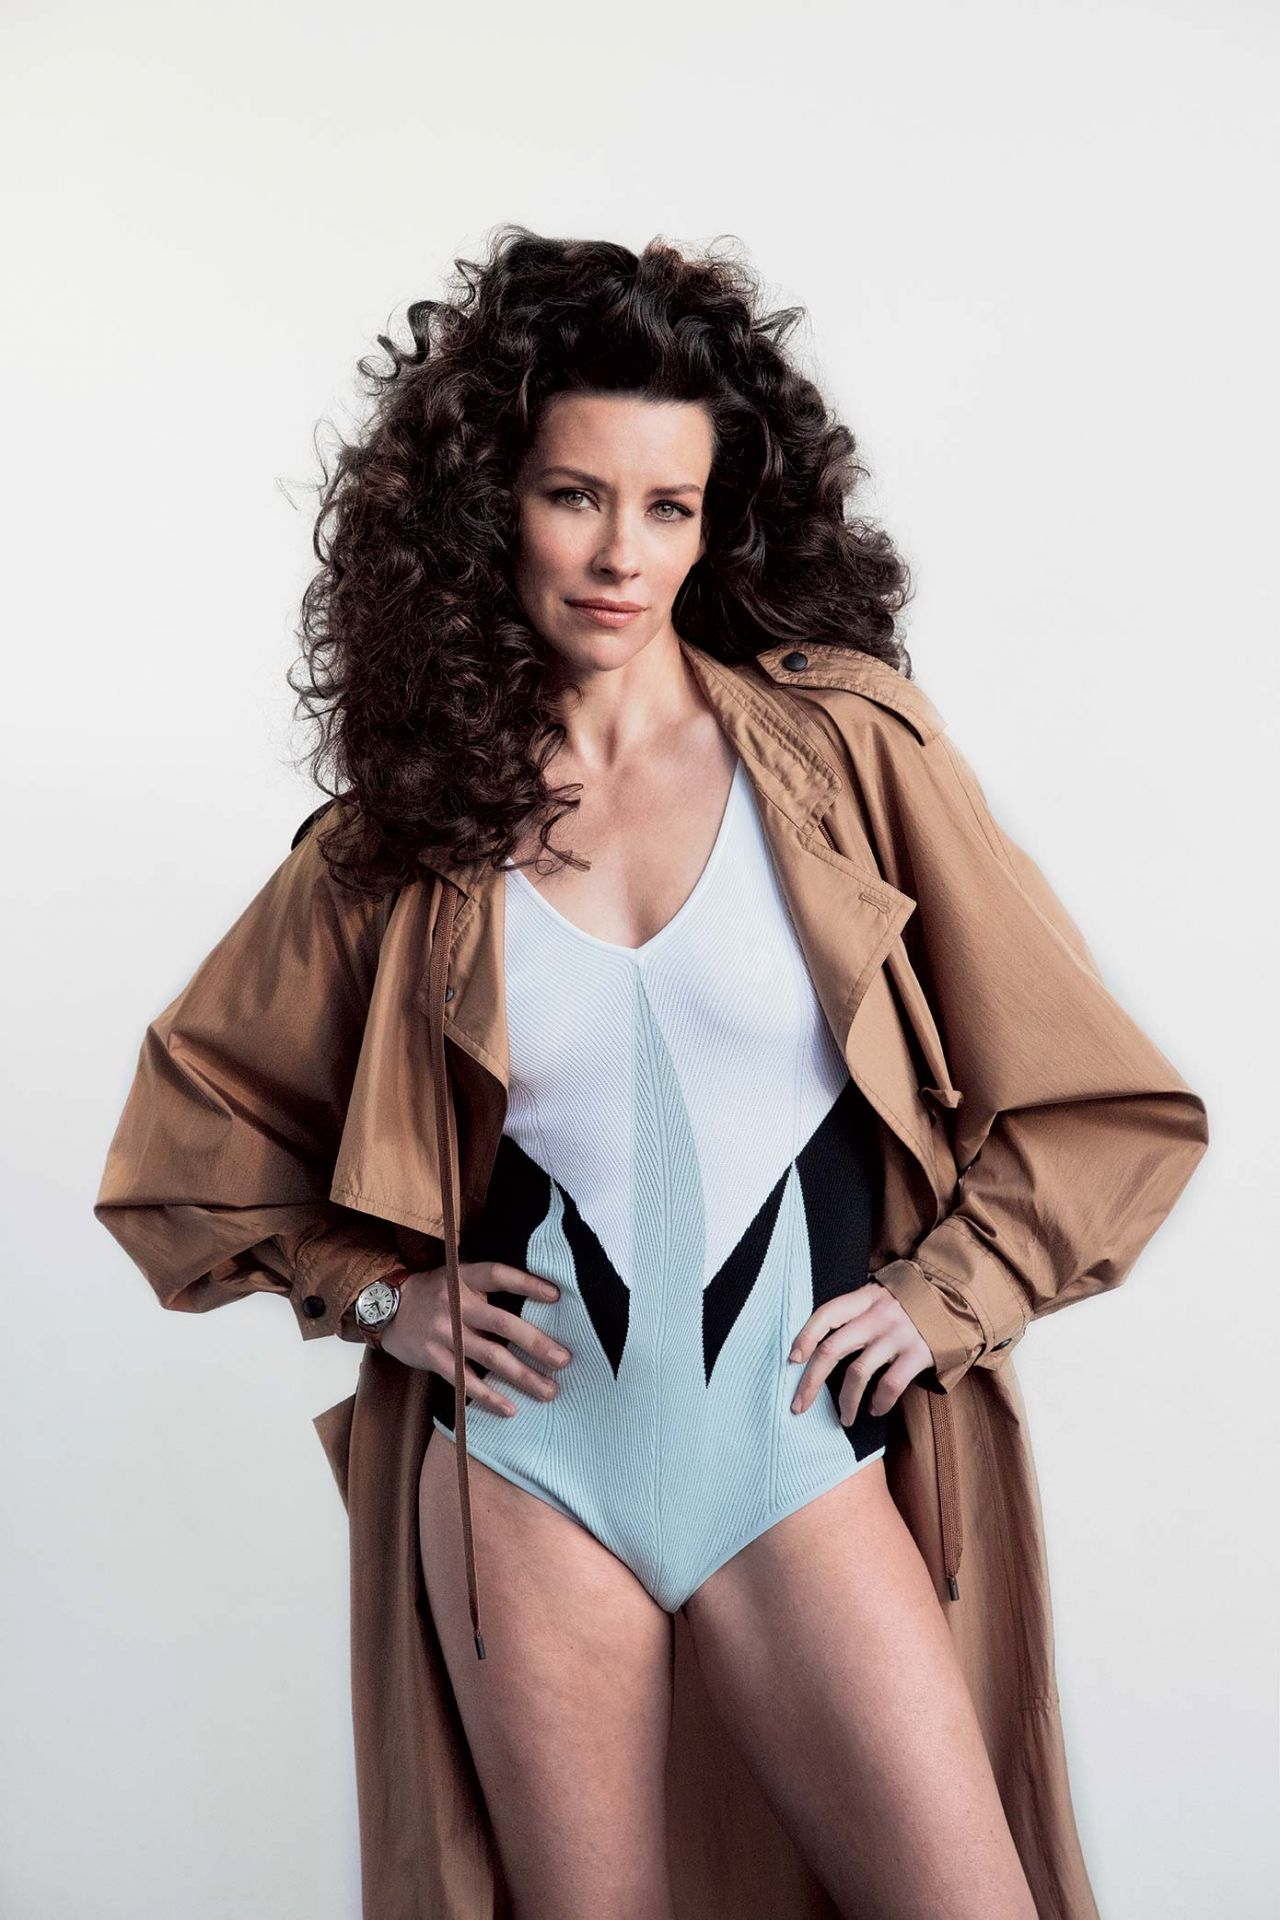 https://celebmafia.com/wp-content/uploads/2018/07/evangeline-lilly-marie-claire-malaysia-july-2018-2.jpg